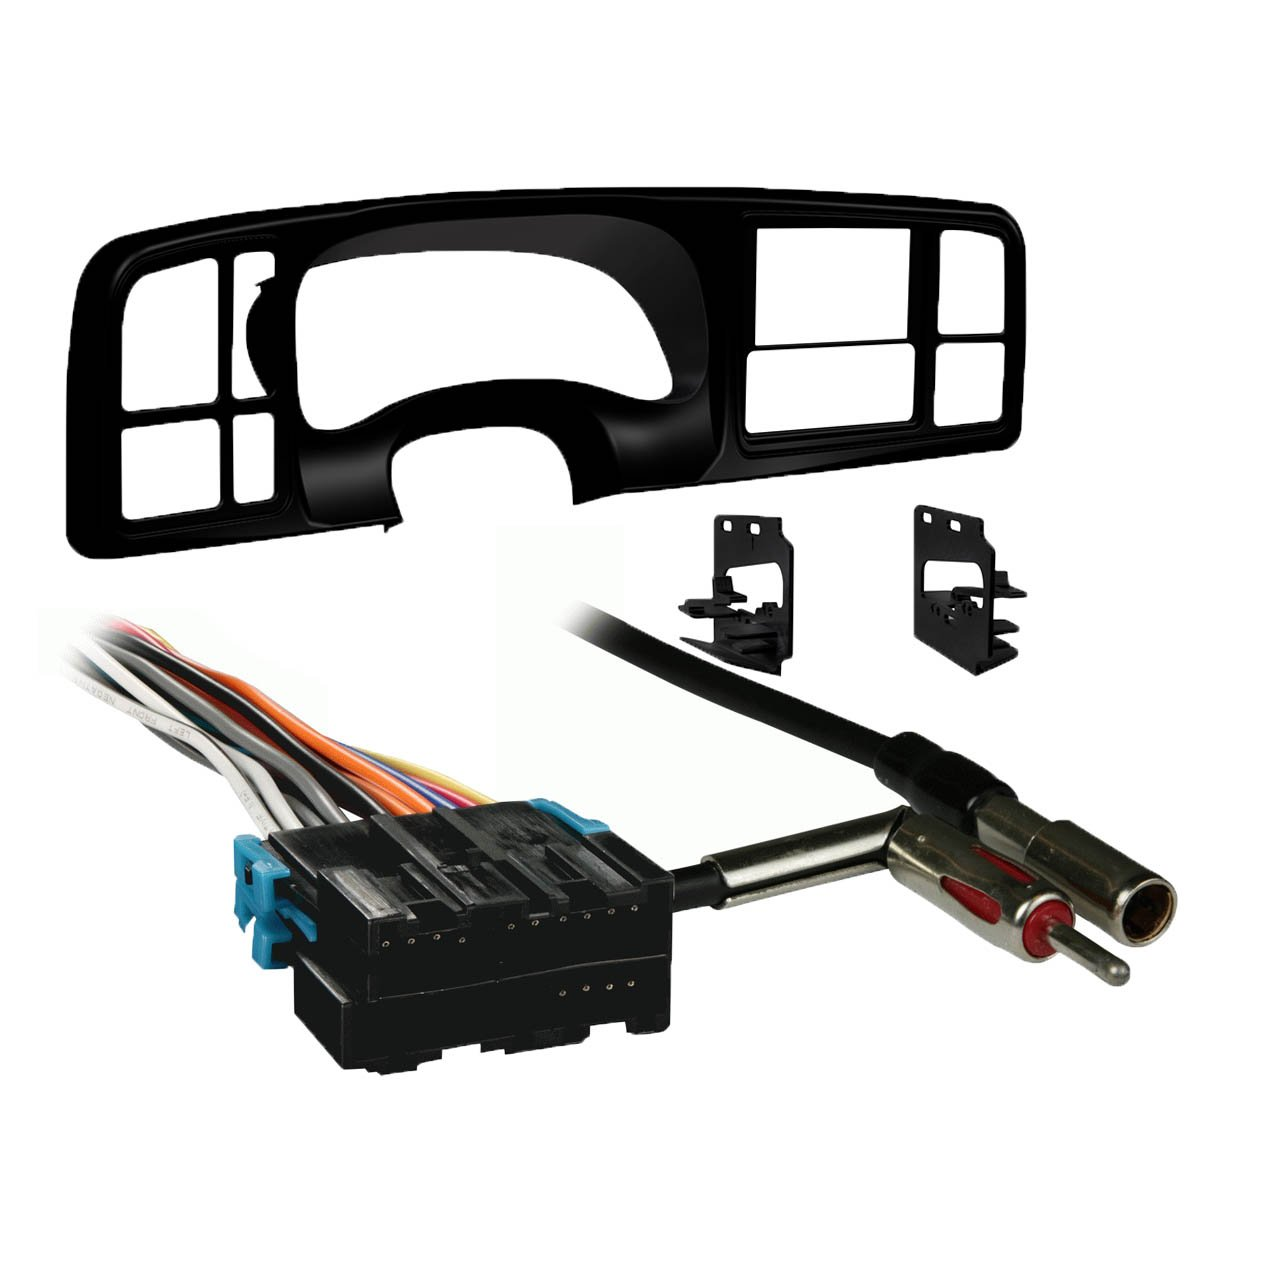 Metra Double Din Car Stereo Radio Install Dash Kit For Jensen Wiring Harness Silverado 1999 02 Sierra Electronics